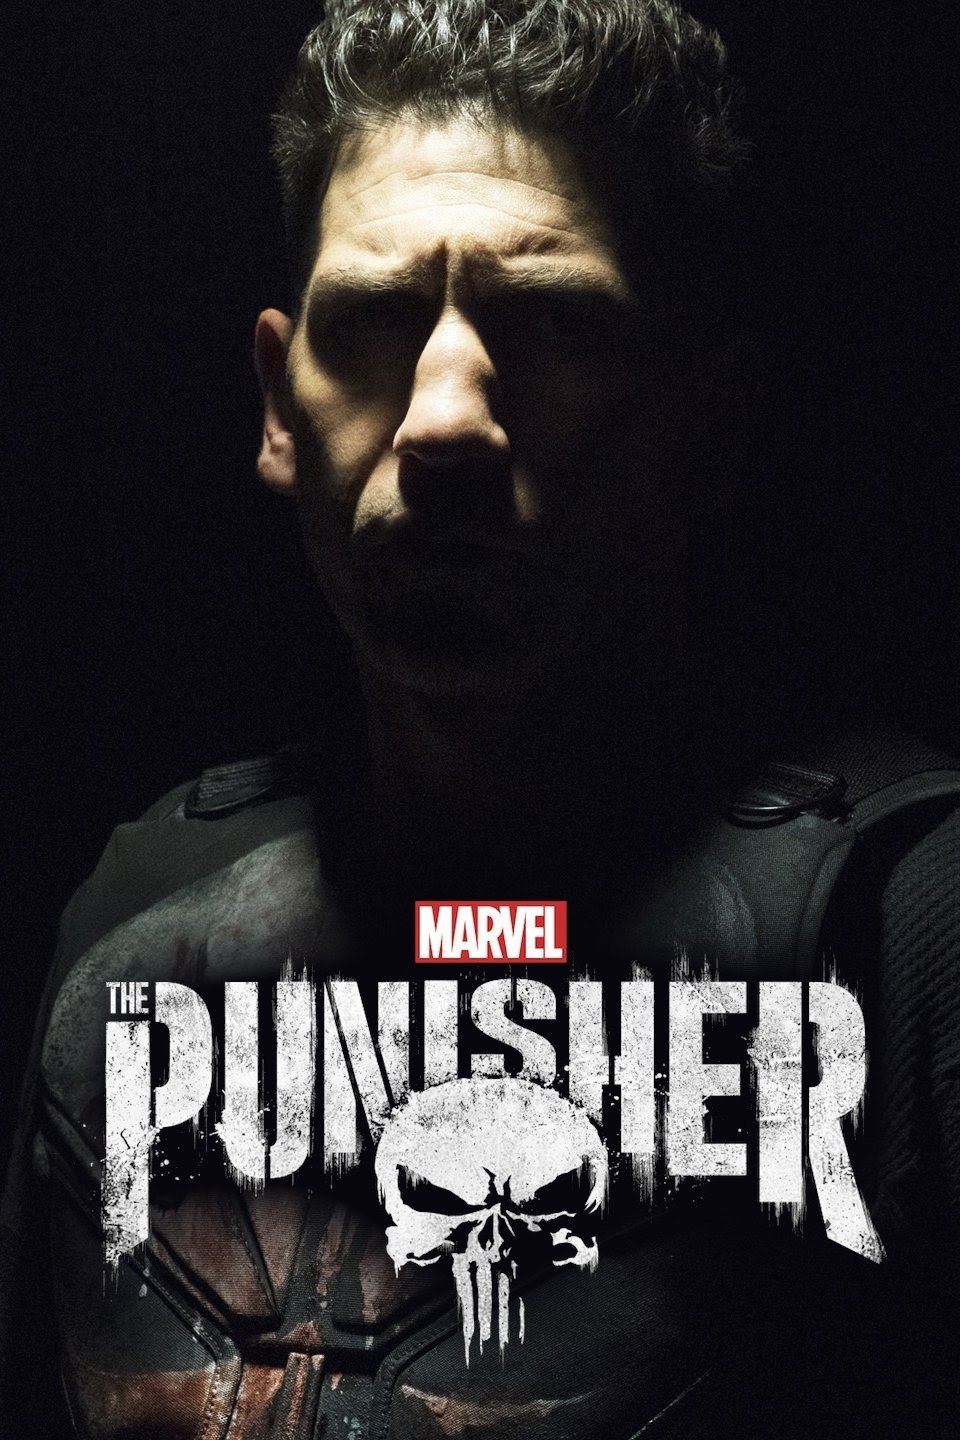 Marvel's The Punisher S01 E04 Cut